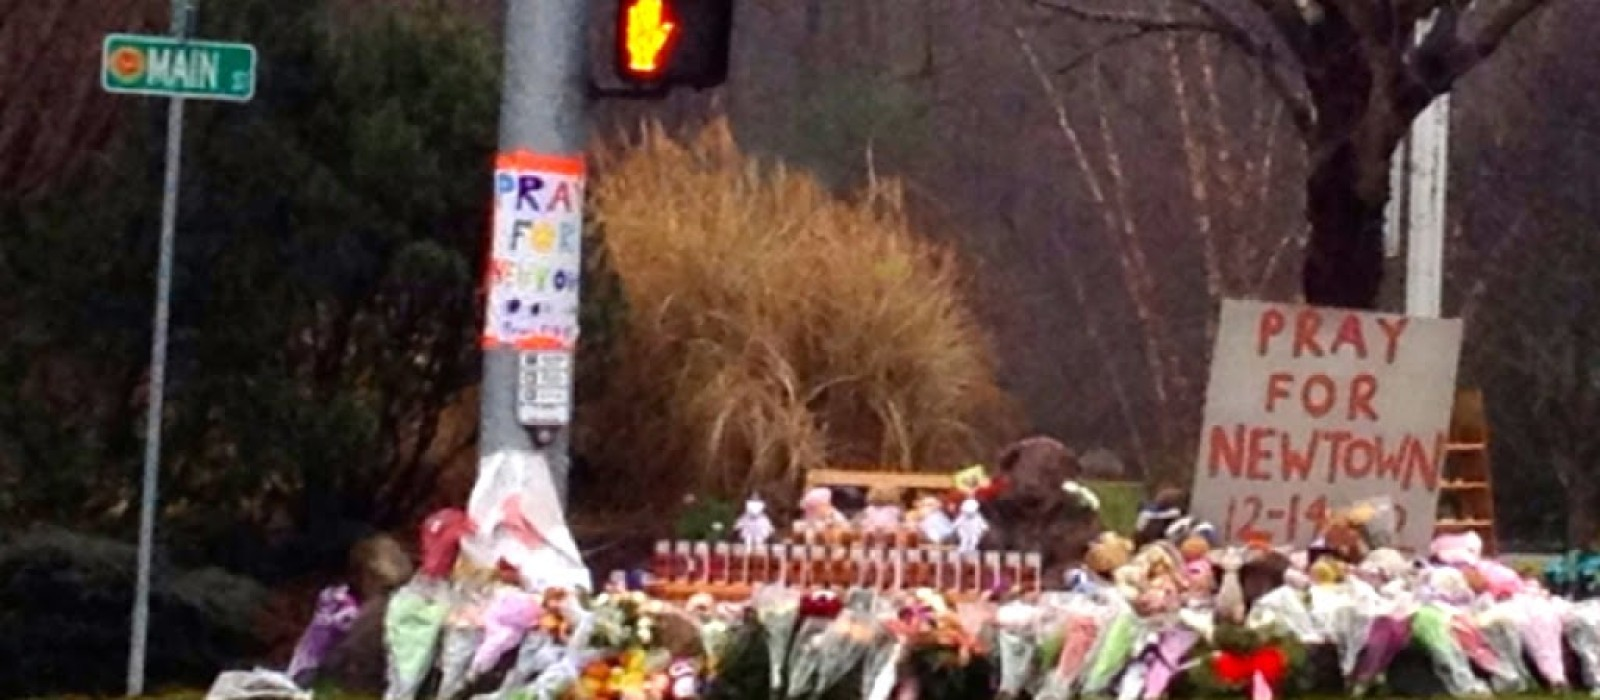 Hurting in Newtown